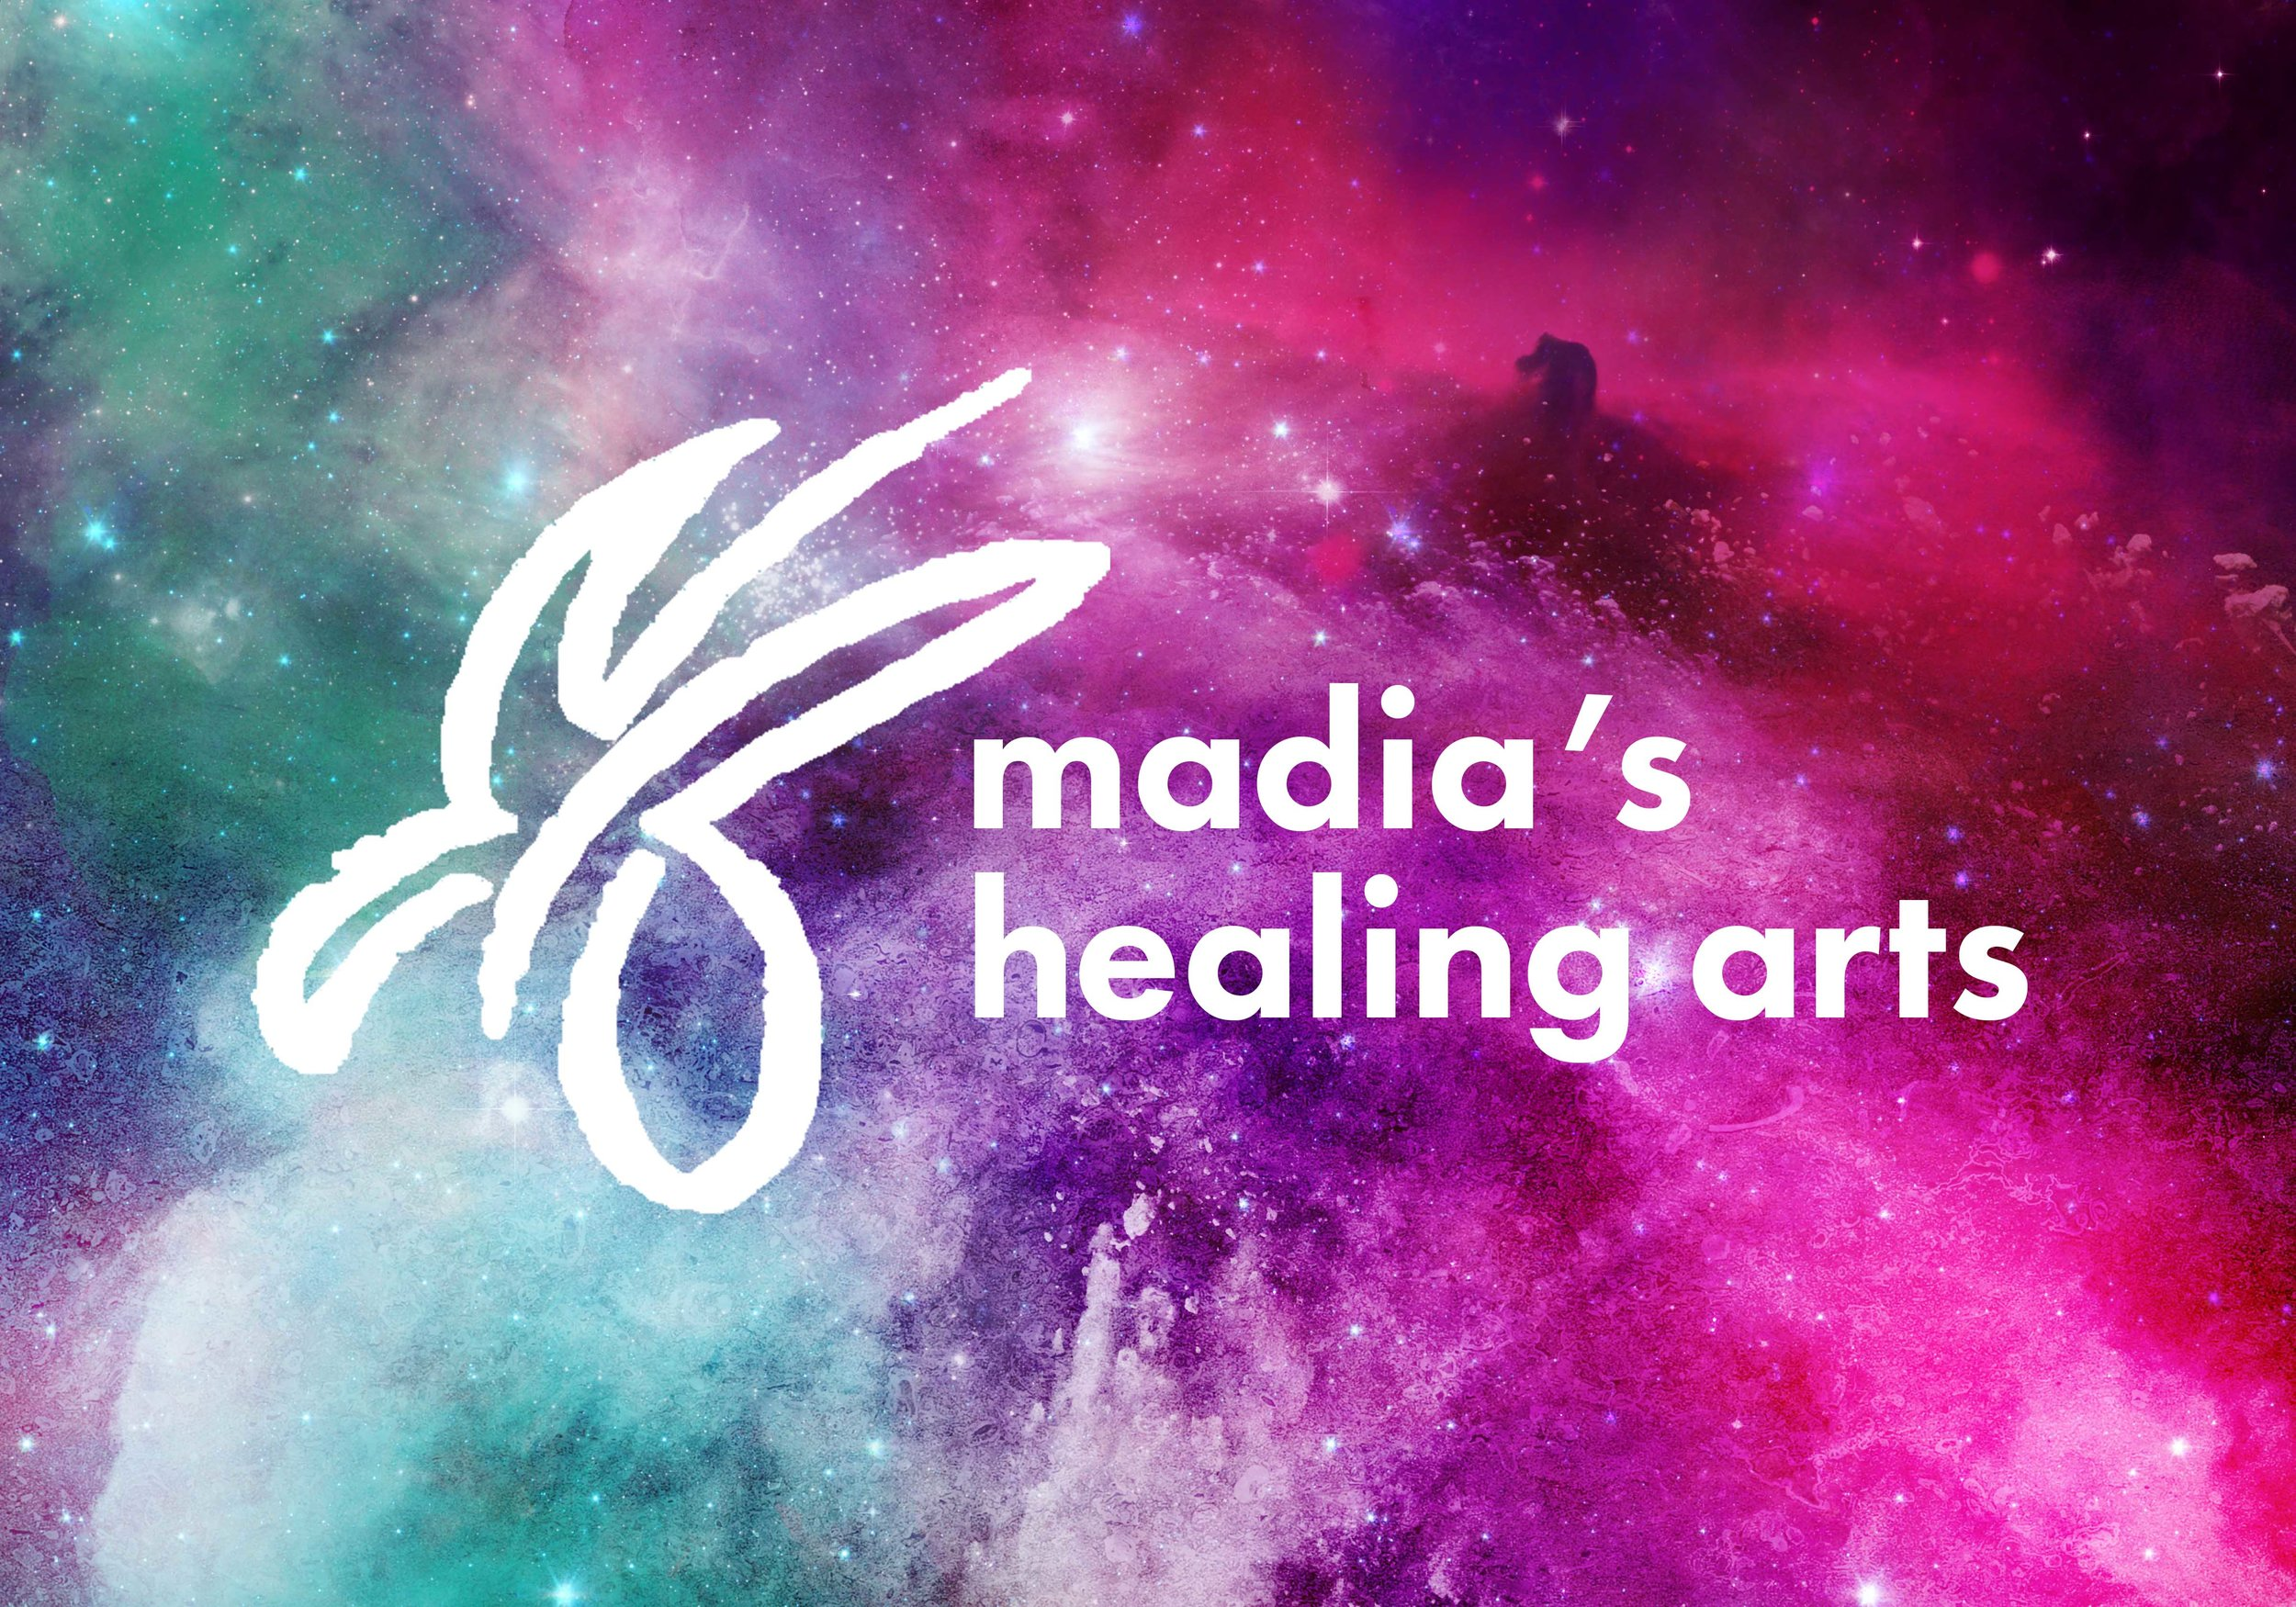 Madias Healing Arts - logo and watercolor background.jpg